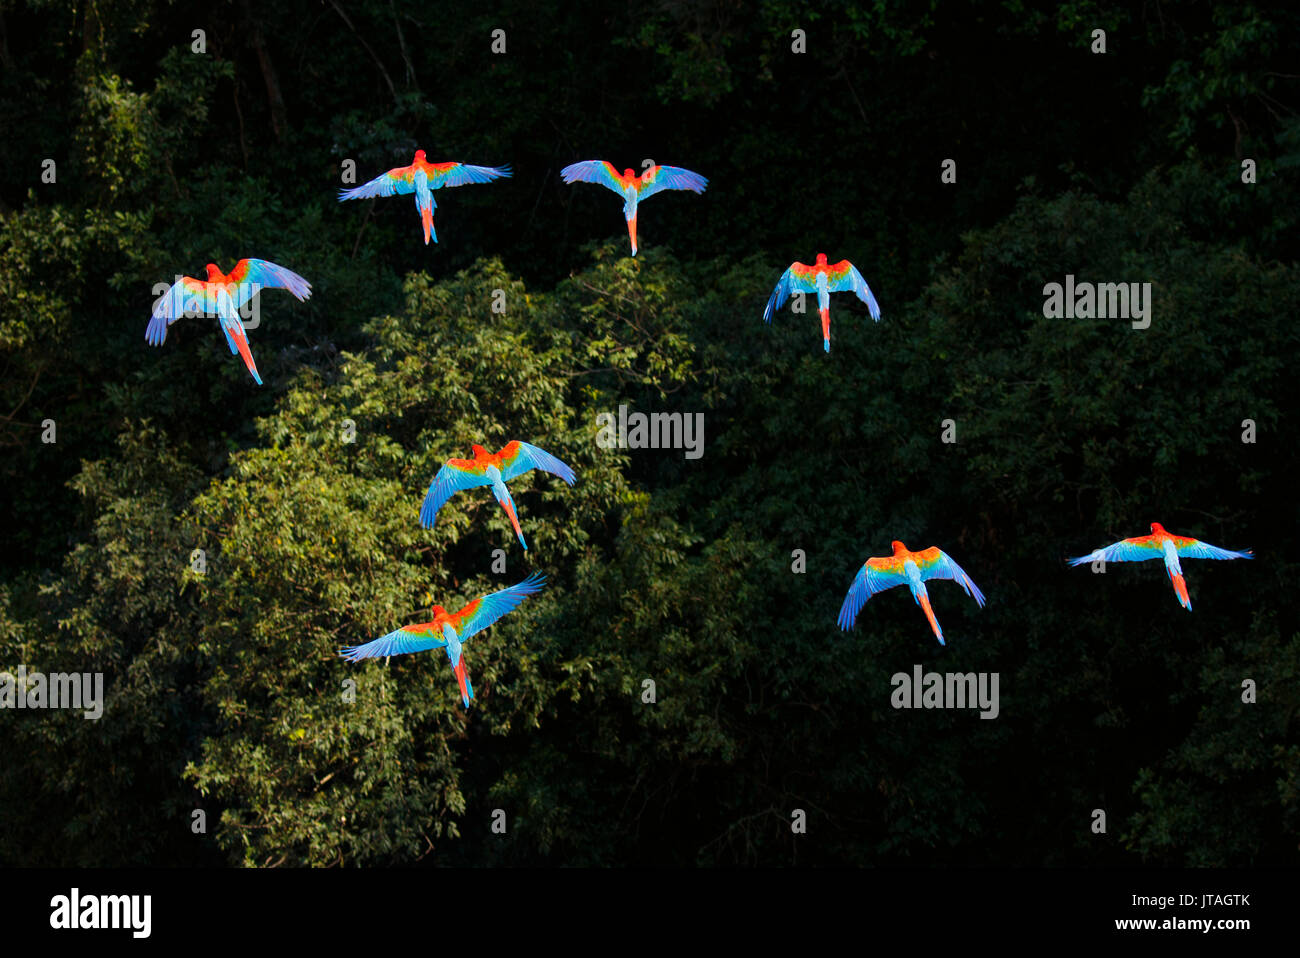 Red and Green Macaws or Green-winged Macaws (Ara chloropterus) in flight over canopy, Mato Grosso do Sul, Brazil, South America - Stock Image